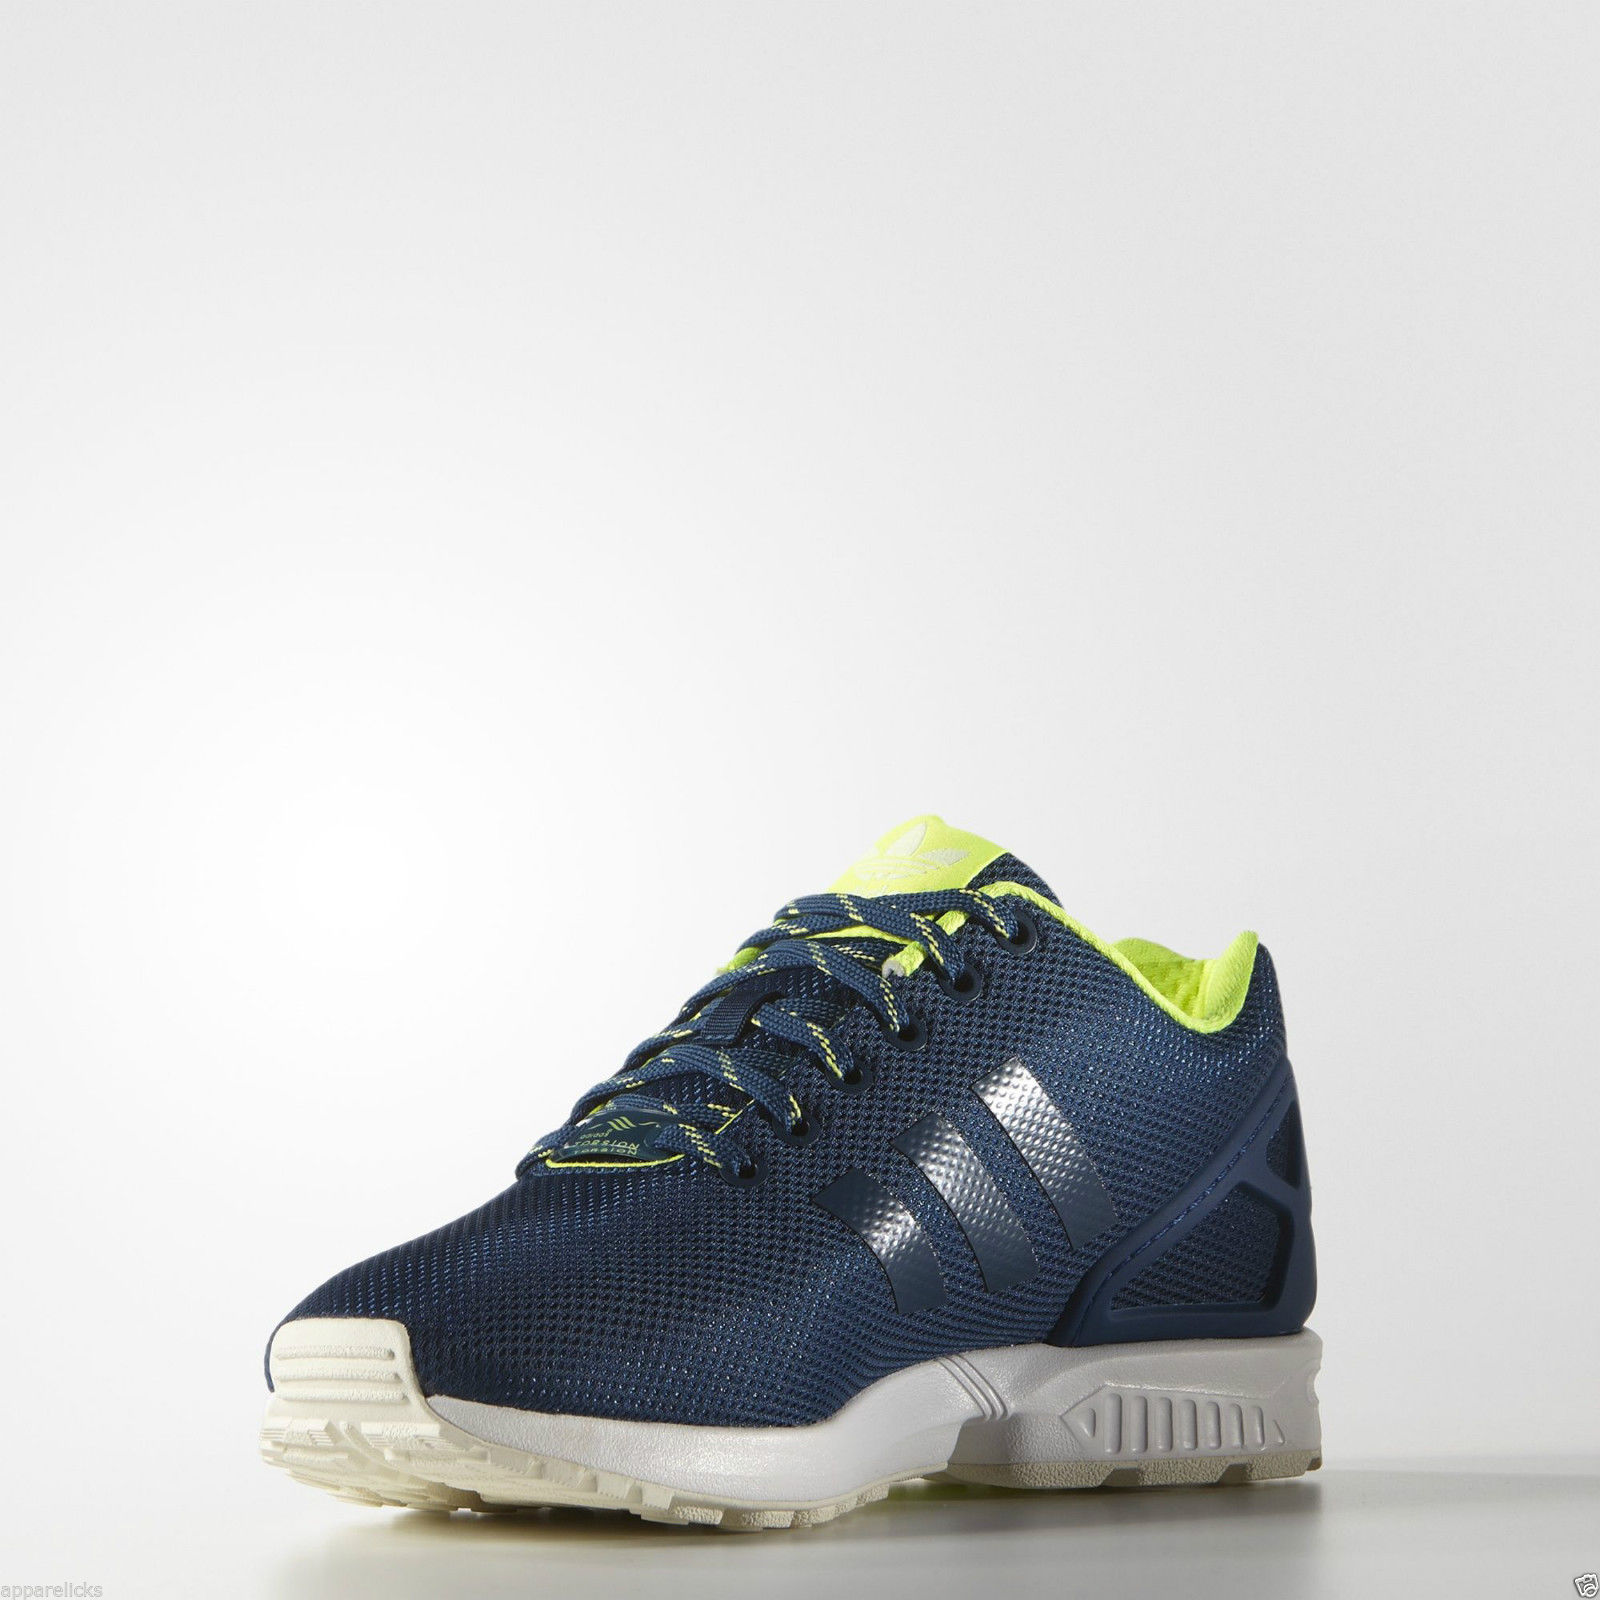 9e4e7576dec43 adidas Originals ZX Flux Blue Green Men Trinomic Shoes SNEAKERS S79101 UK  8. About this product. Picture 1 of 8  Picture 2 of 8  Picture 3 of 8 ...